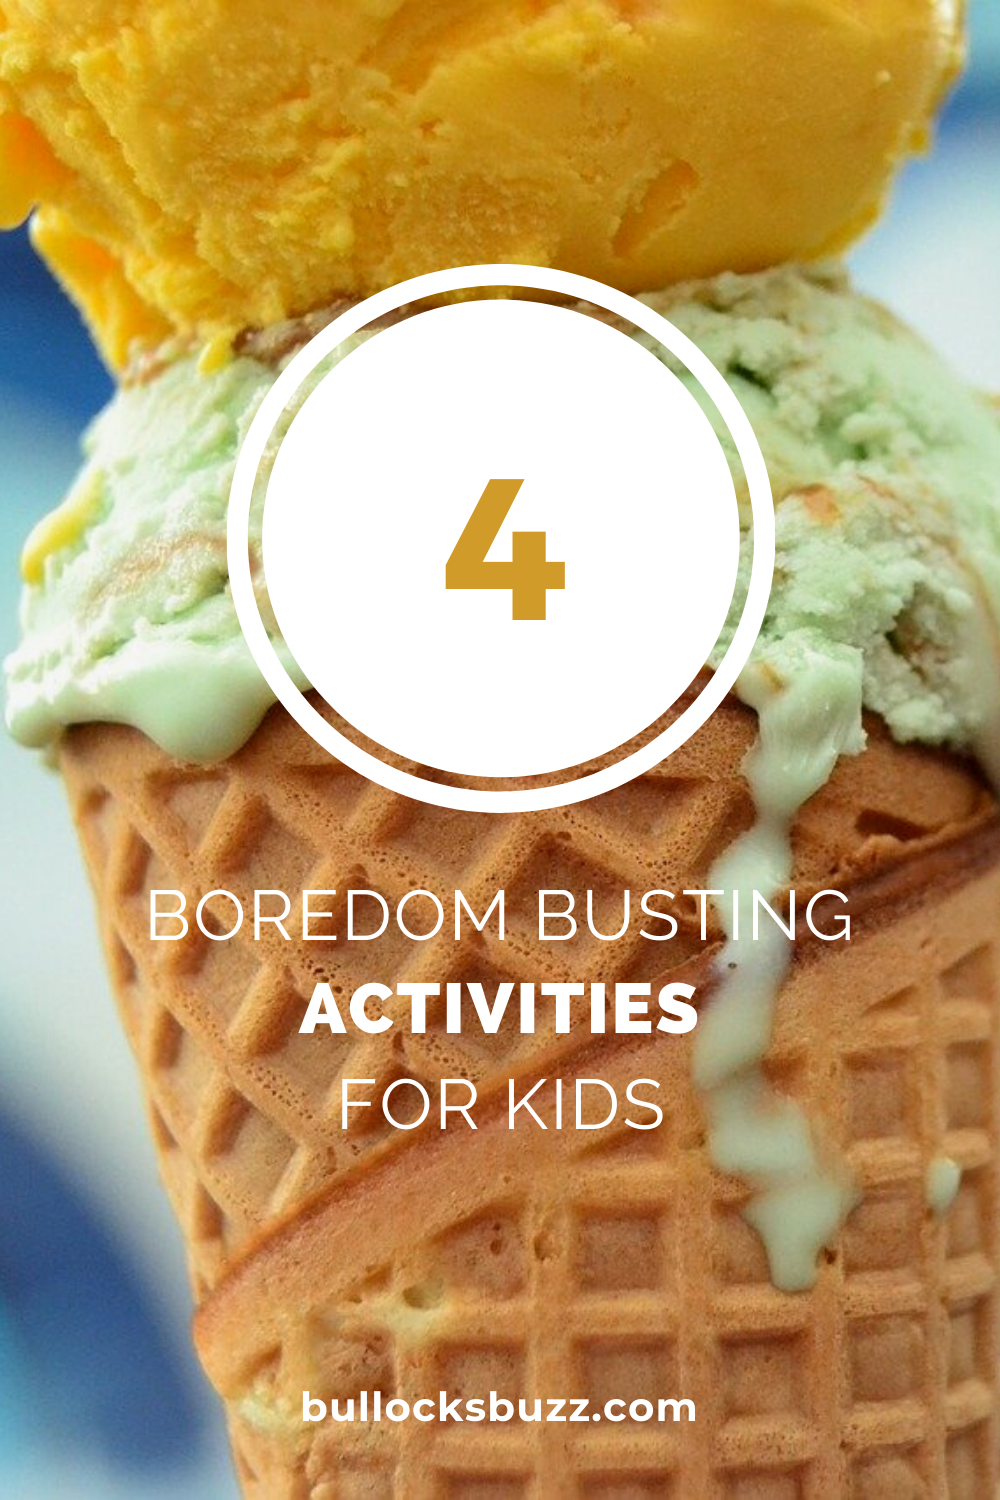 Summer's winding down, and the kids are getting restless. Vacation's over, camp's out and it's too hot. Get rid of boredom with these 4 activities for kids!